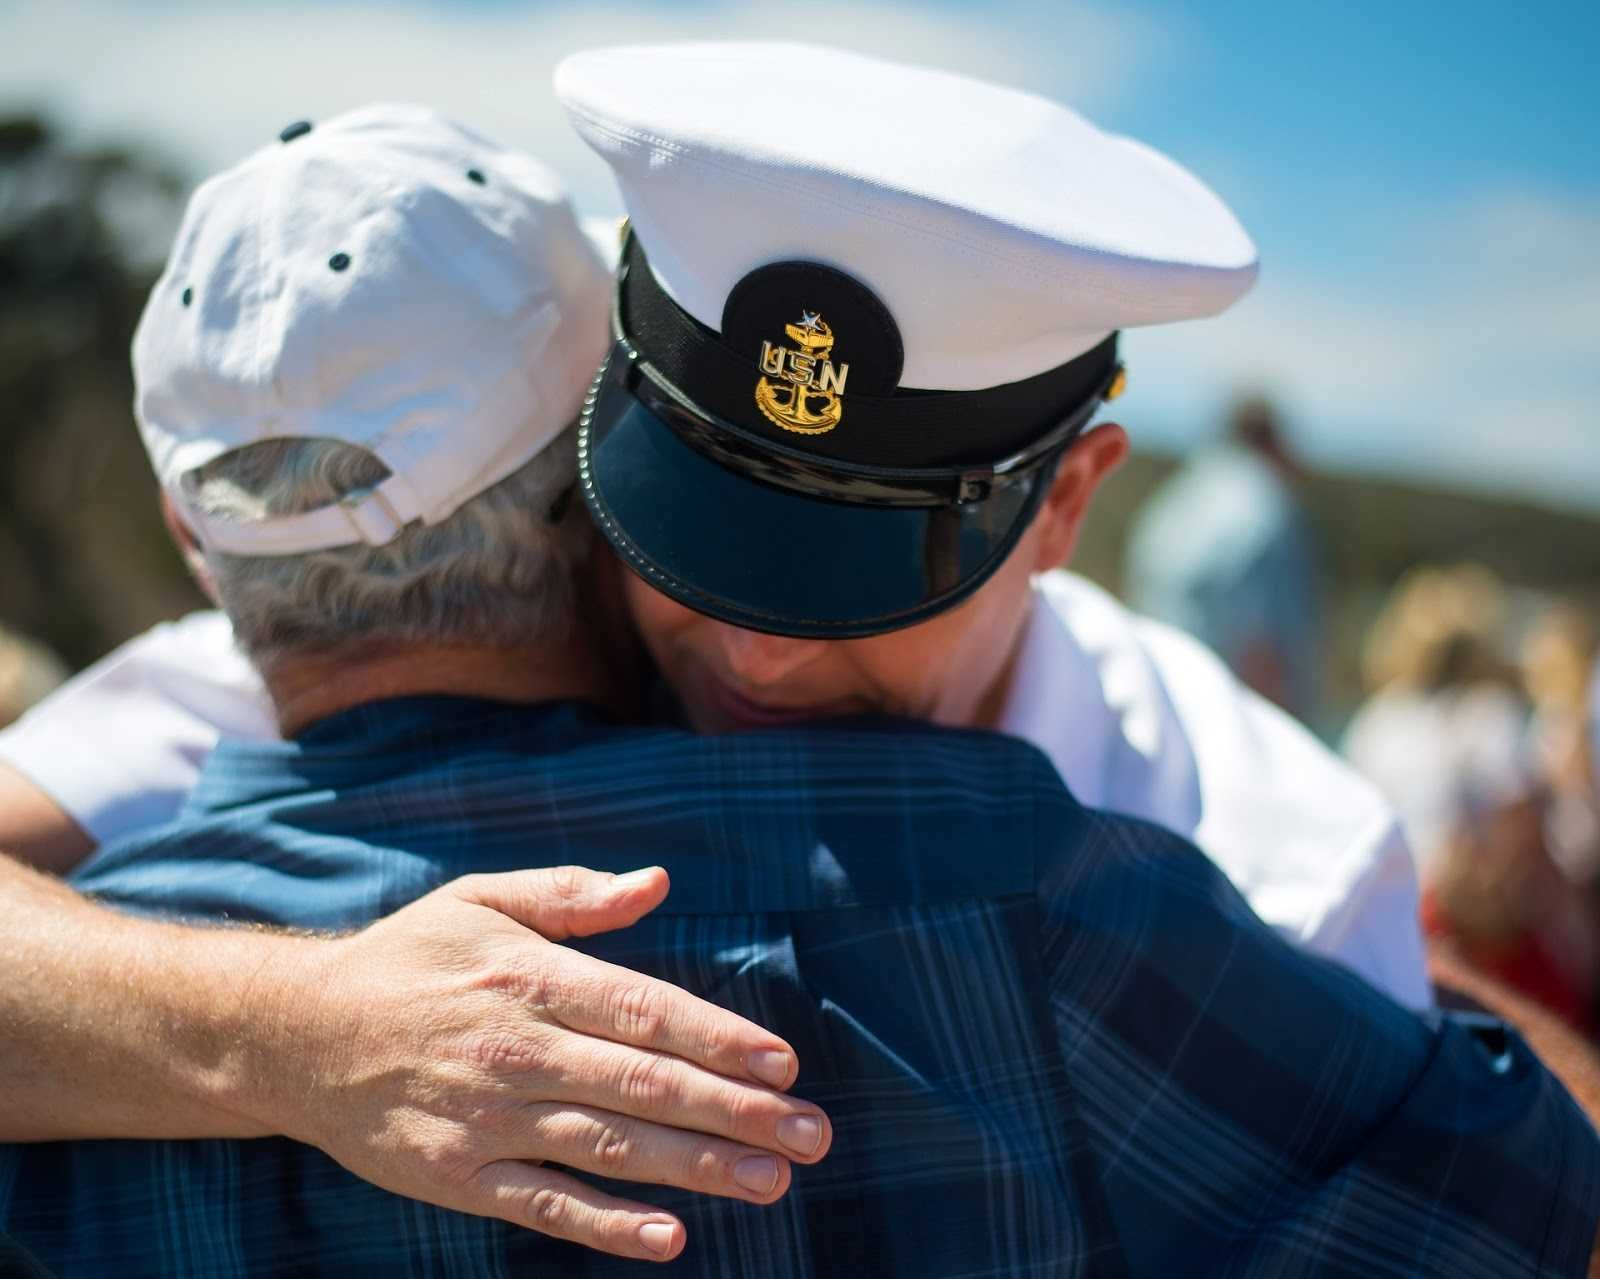 VA Disability Claim Deferred: What This Means and What to Do Next